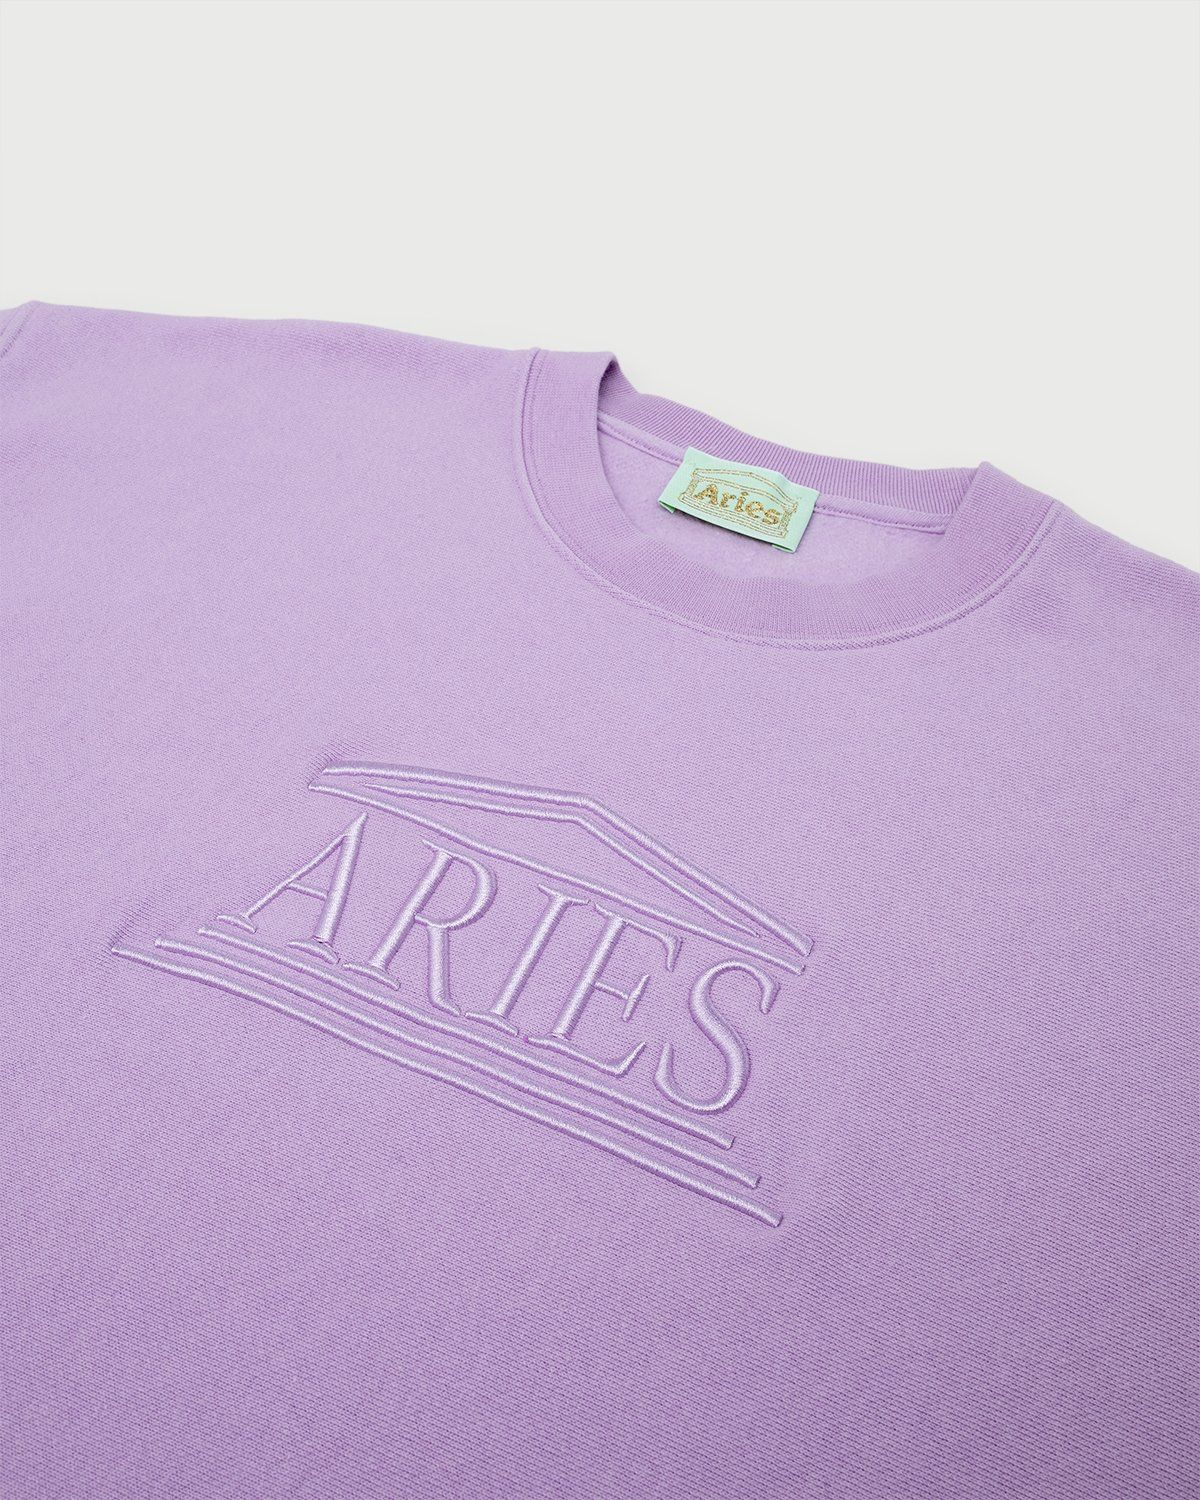 Aries — Embroidered Temple Sweatshirt Unisex Orchid - Image 2